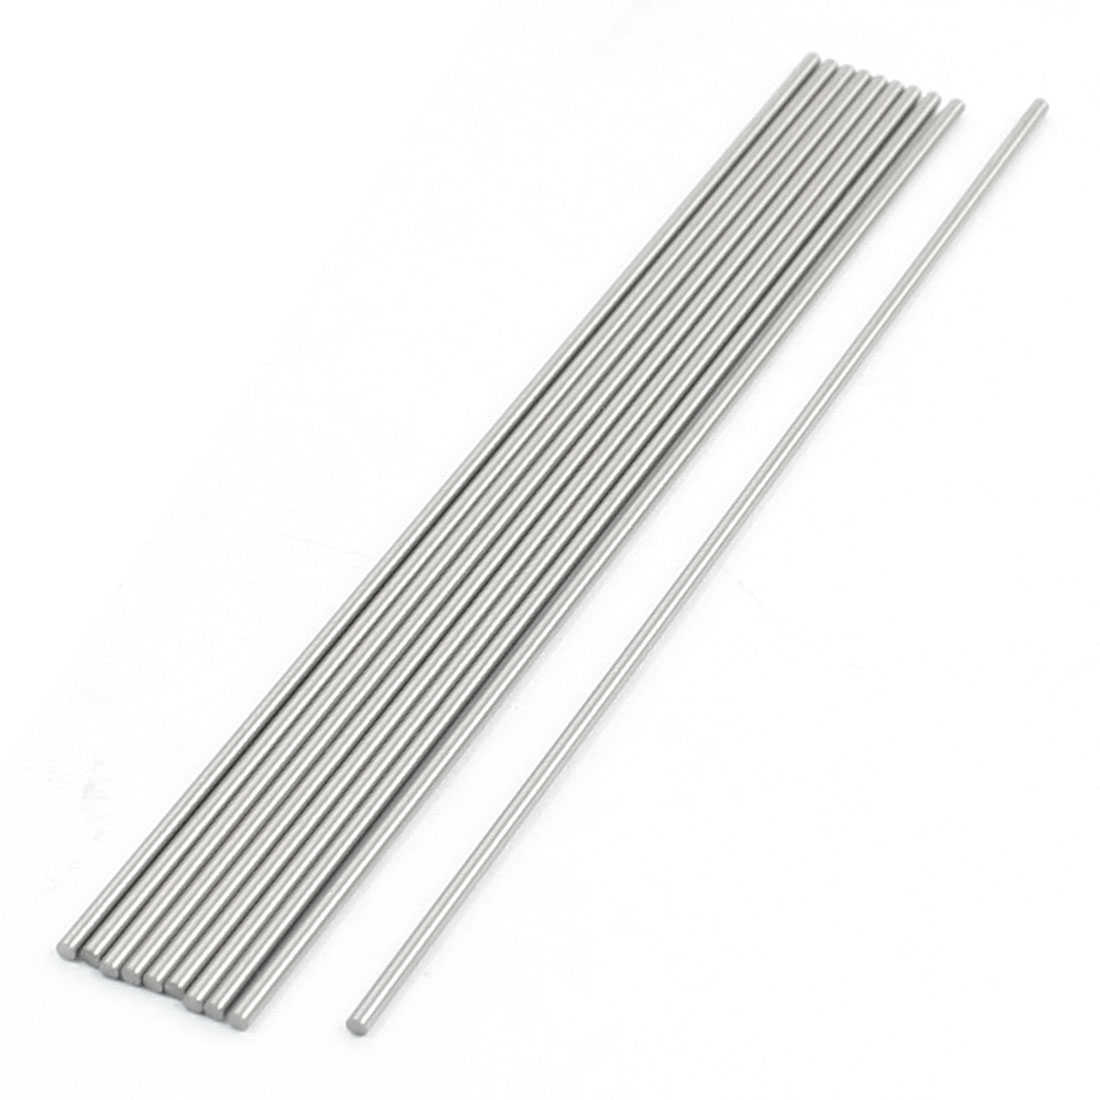 Unique Bargains 10 Pcs 1.3mm x 100mm HSS High Speed Steel Turning Bars for CNC Lathe